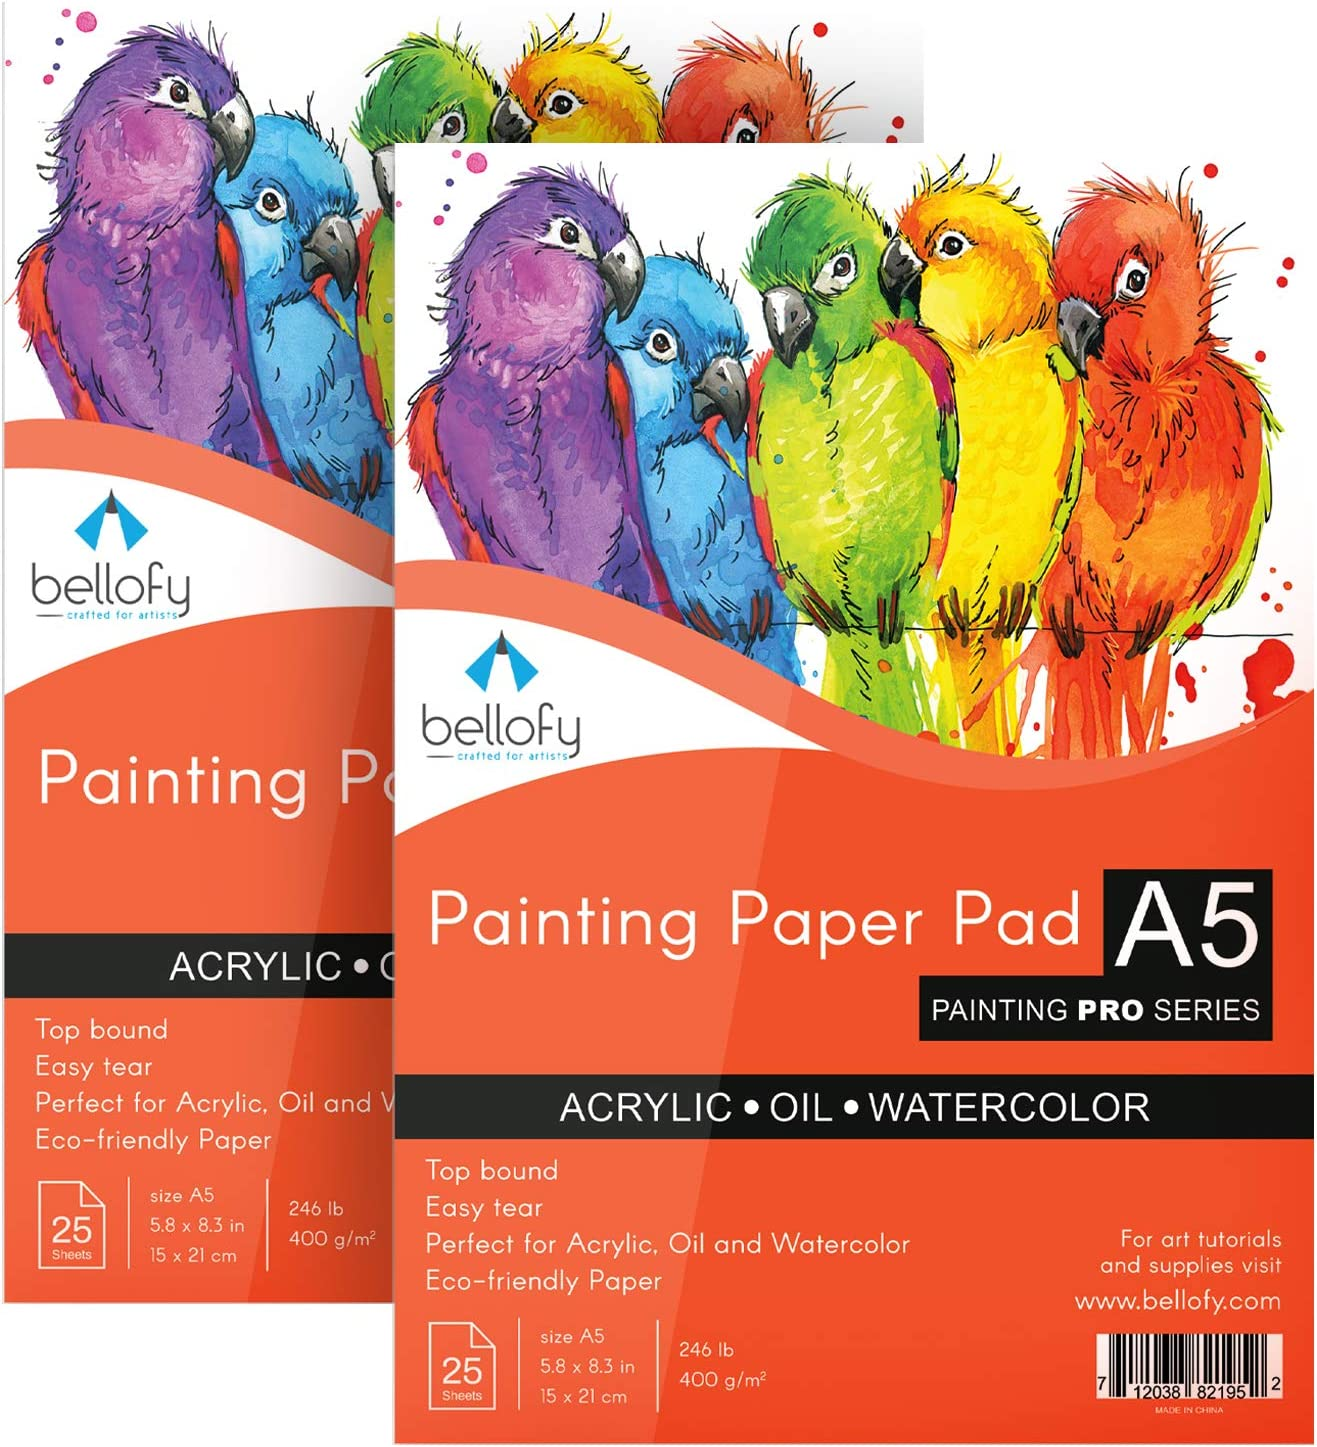 Bellofy Painting Max 84% OFF Beauty products Paper Pads - Watercolor Premium Acrylic Oil Pai